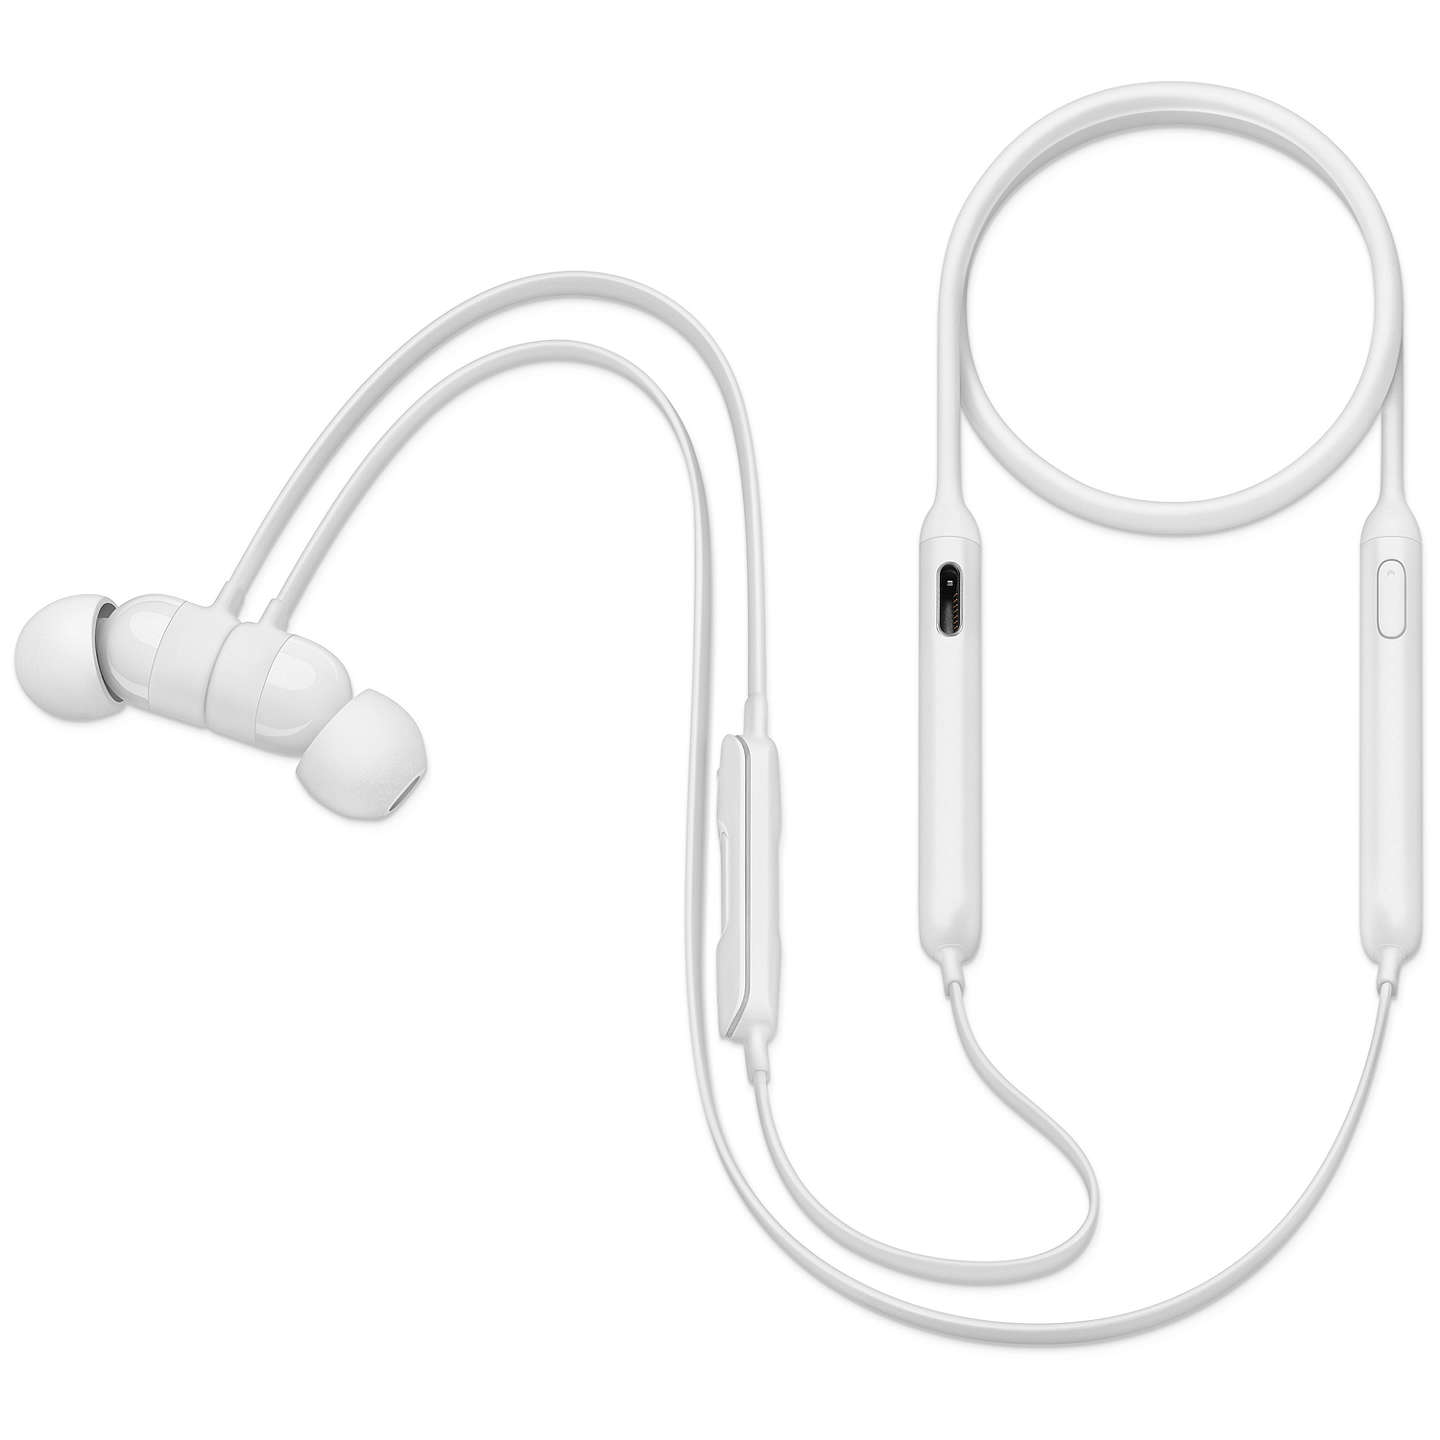 Beatsˣ Wireless Bluetooth In-Ear Headphones with Mic